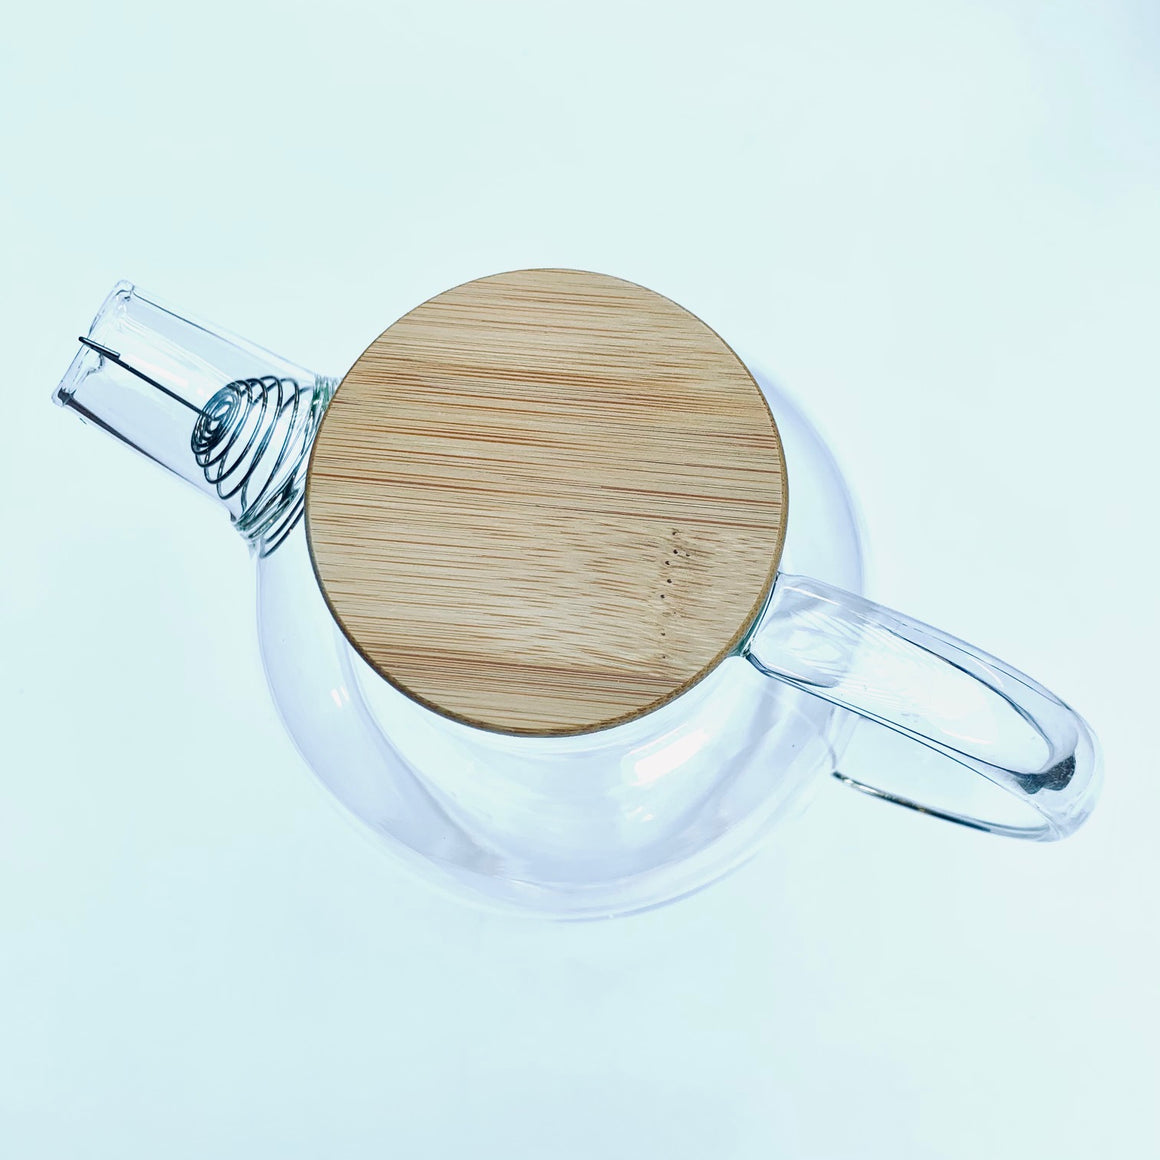 stovetop safe glass kettle with bamboo lid and strainer